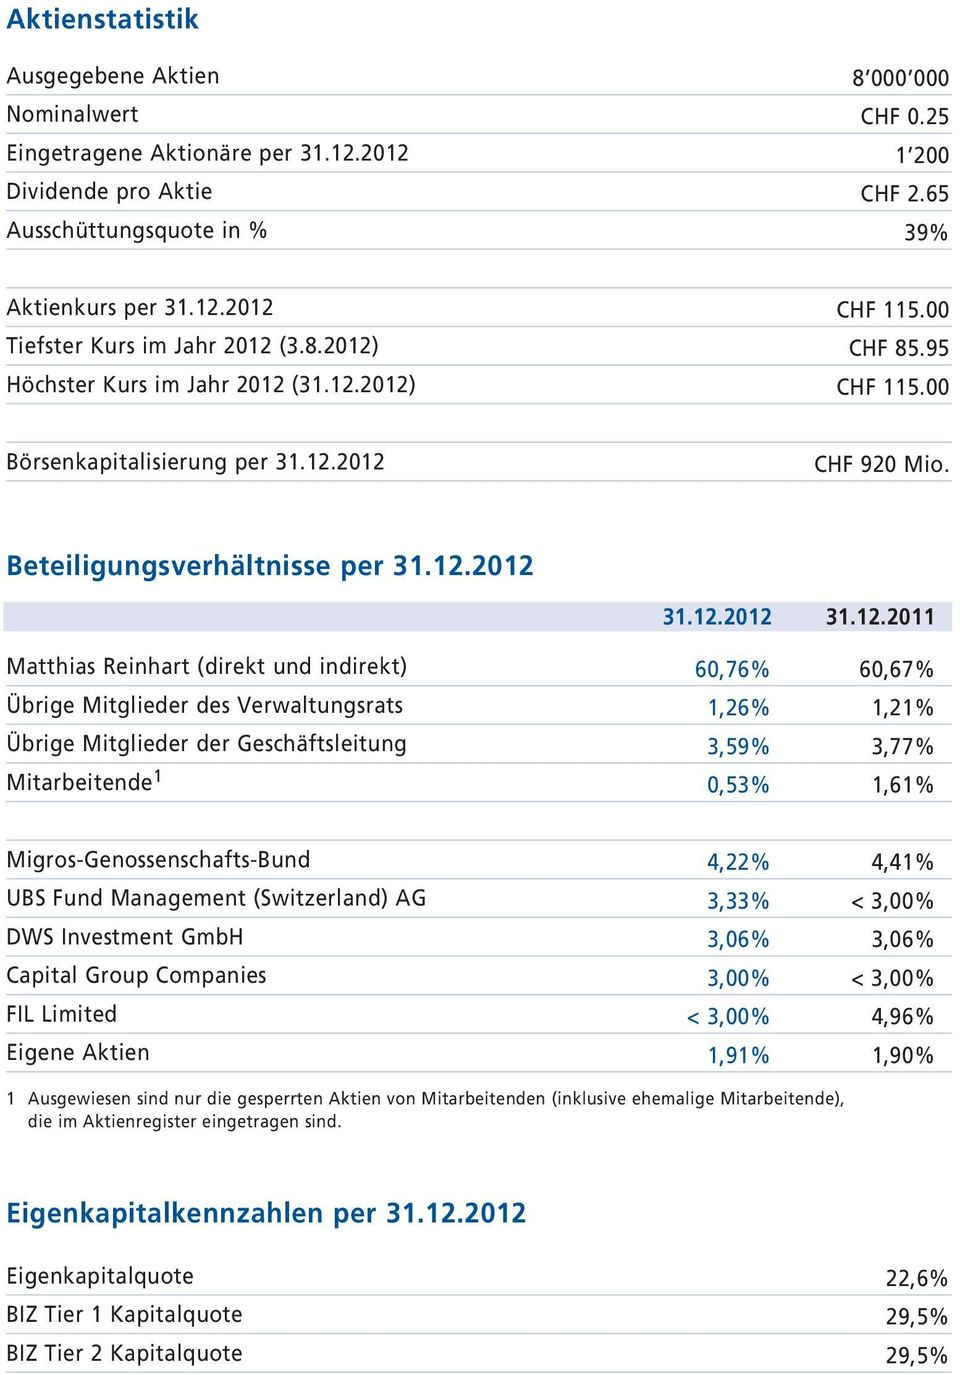 12.212 6,76% 1,26% 3,59%,53% 31.12.211 6,67% 1,21% 3,77% 1,61% Migros-Genossenschafts-Bund UBS Fund Management (Switzerland) AG DWS Investment GmbH Capital Group Companies FIL Limited Eigene Aktien